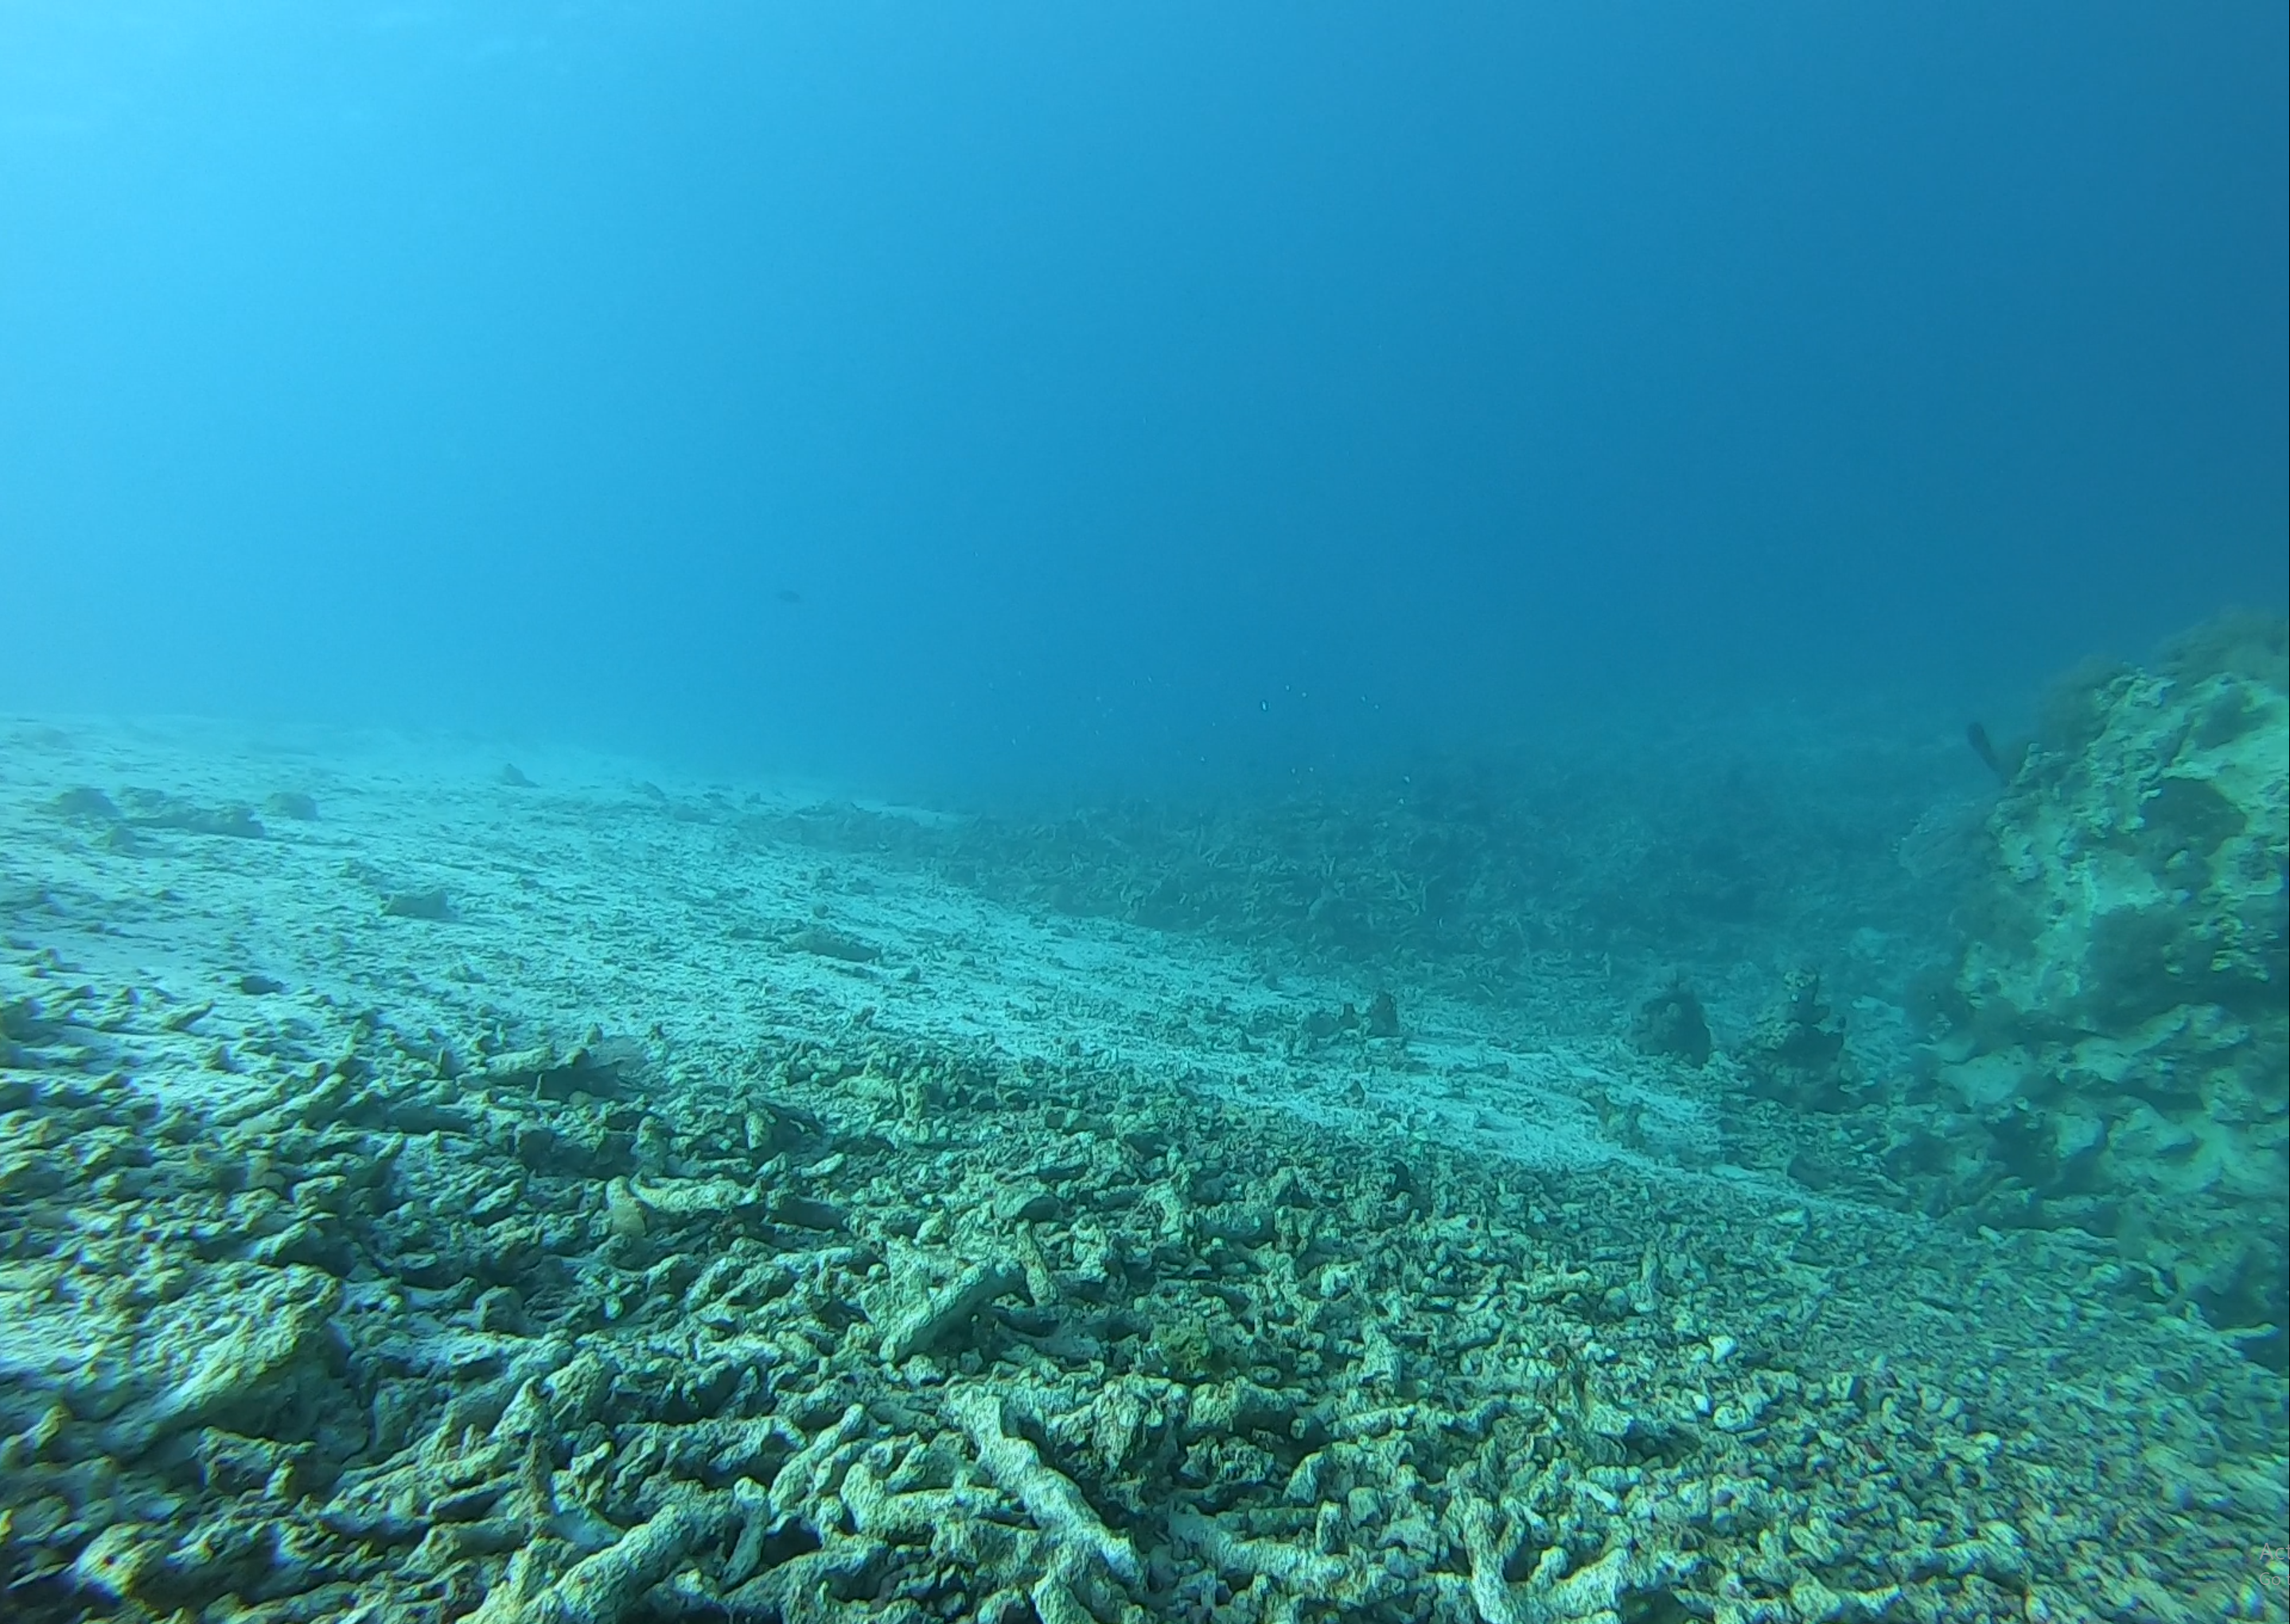 A similar area of destroyed coral, with no fish present